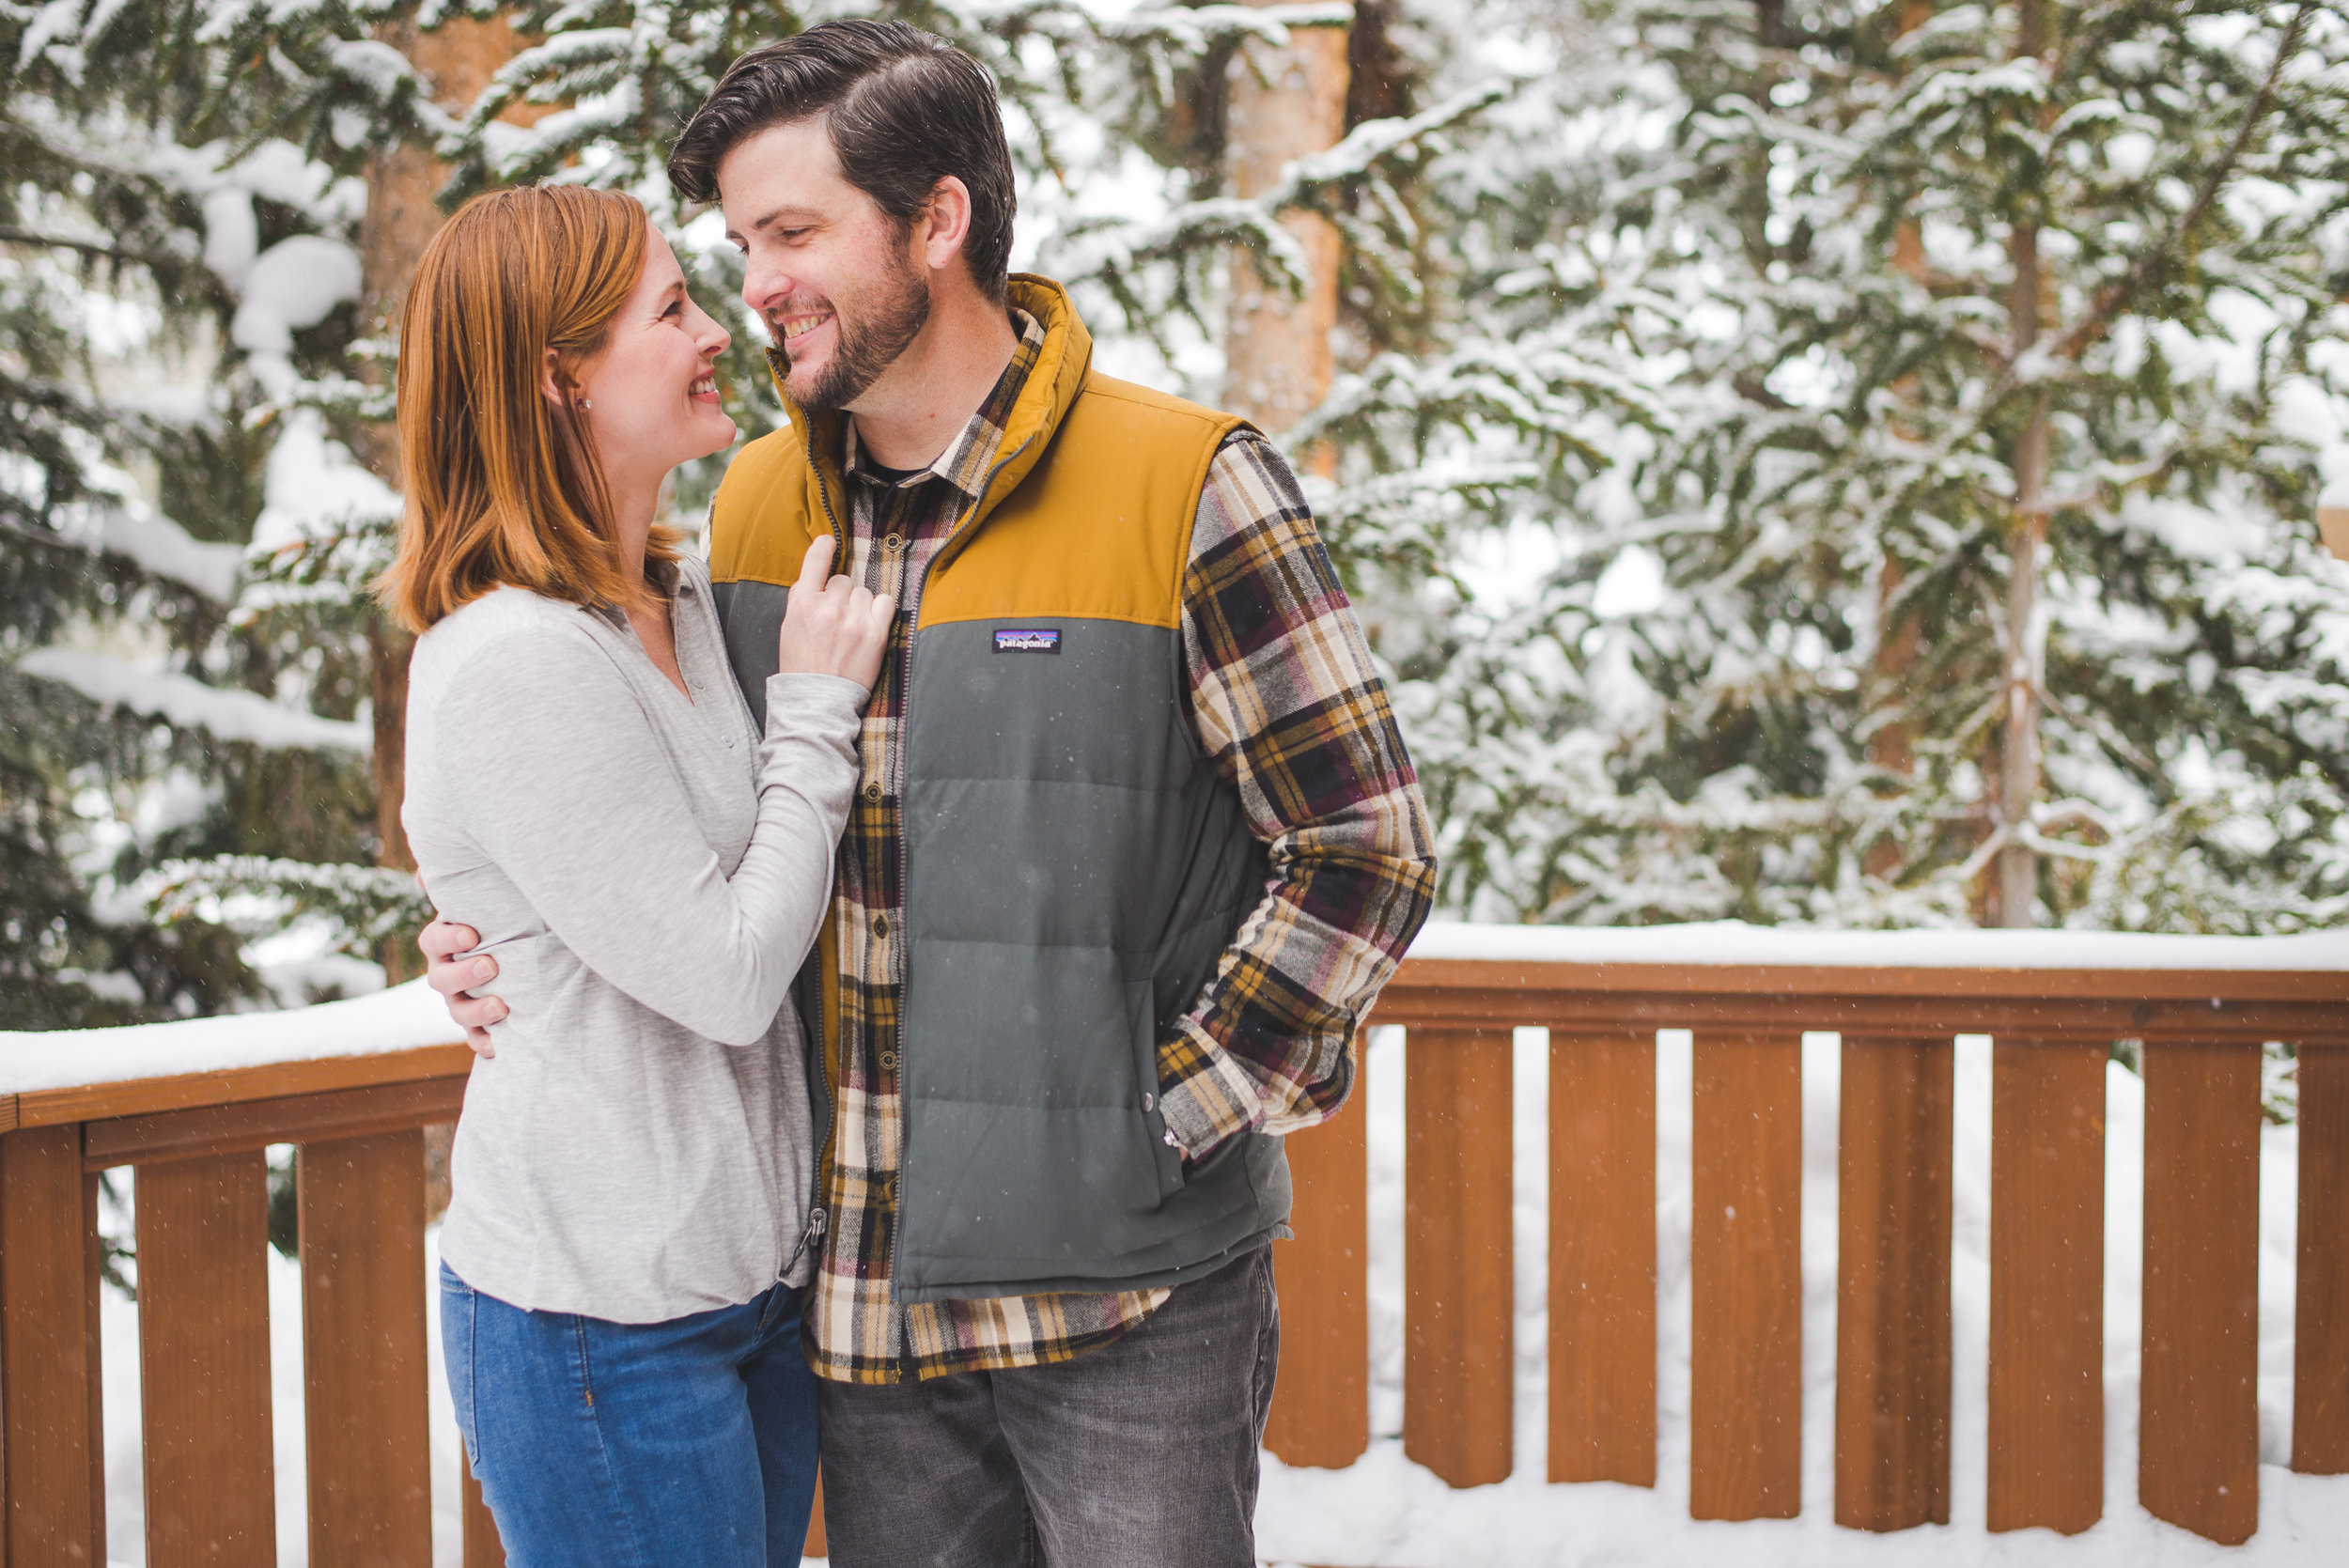 Breckenridge winter family portraits in the mountains | Layered Looks for Him | Keeping Composure Photography